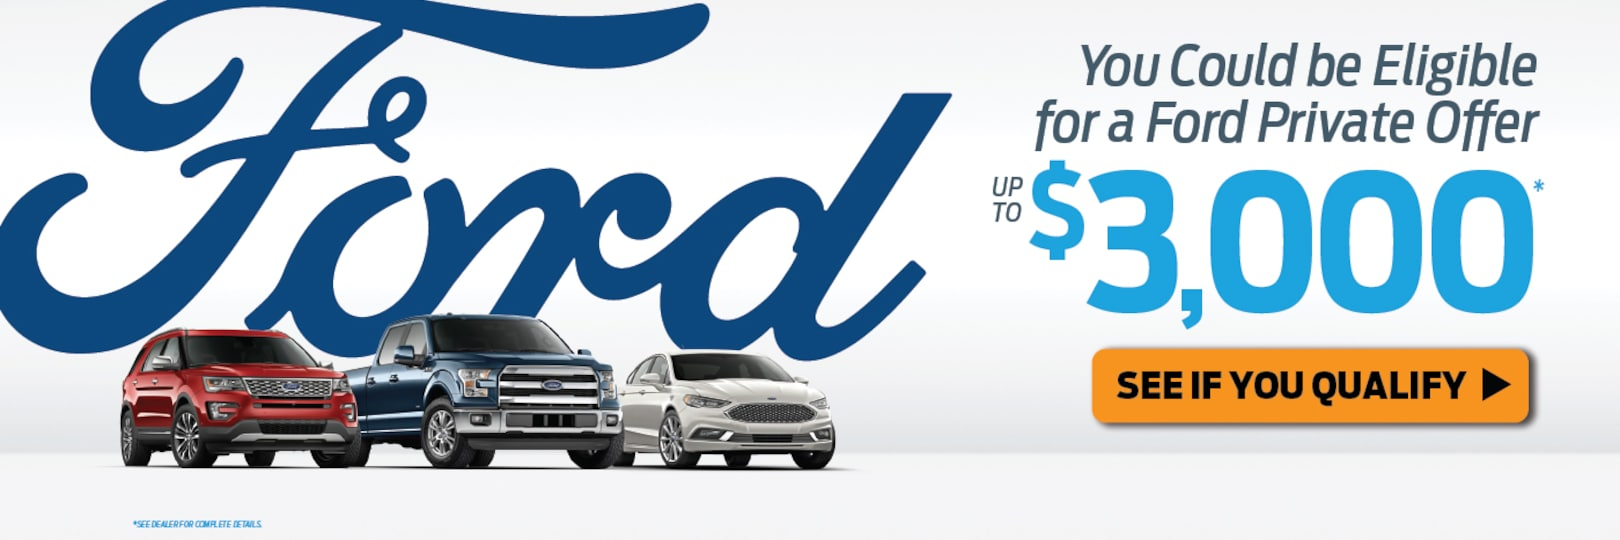 Sheehy Ford Ashland Va >> Ford Dealer Ashland VA | New & Used Ford For Sale | Ford Service | Ford Dealer VA